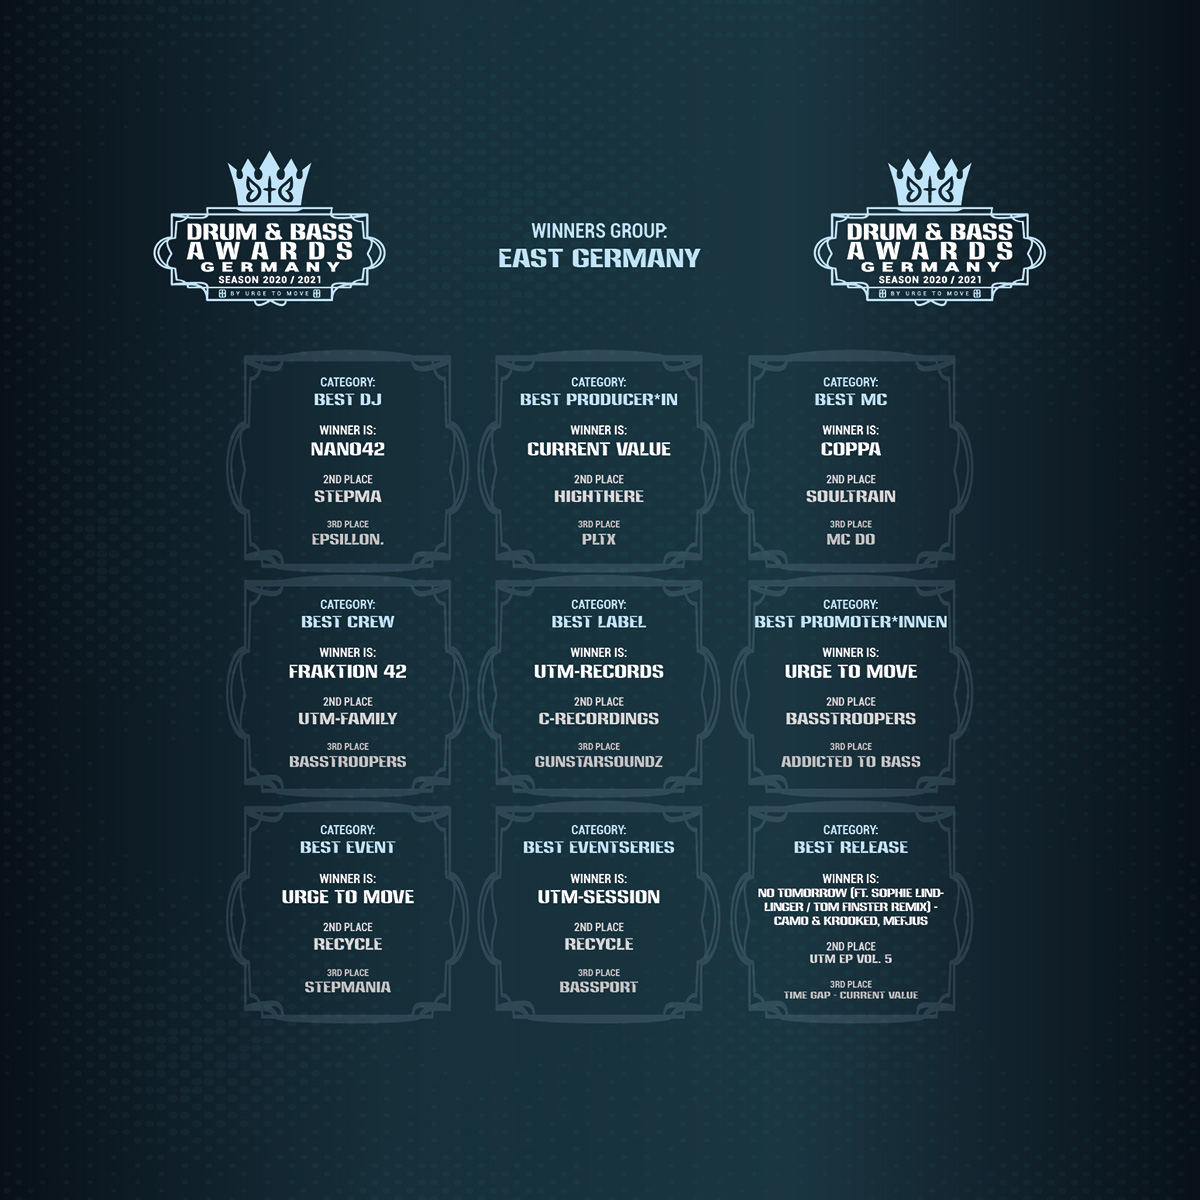 Drum and Bass Awards Germany - EAST